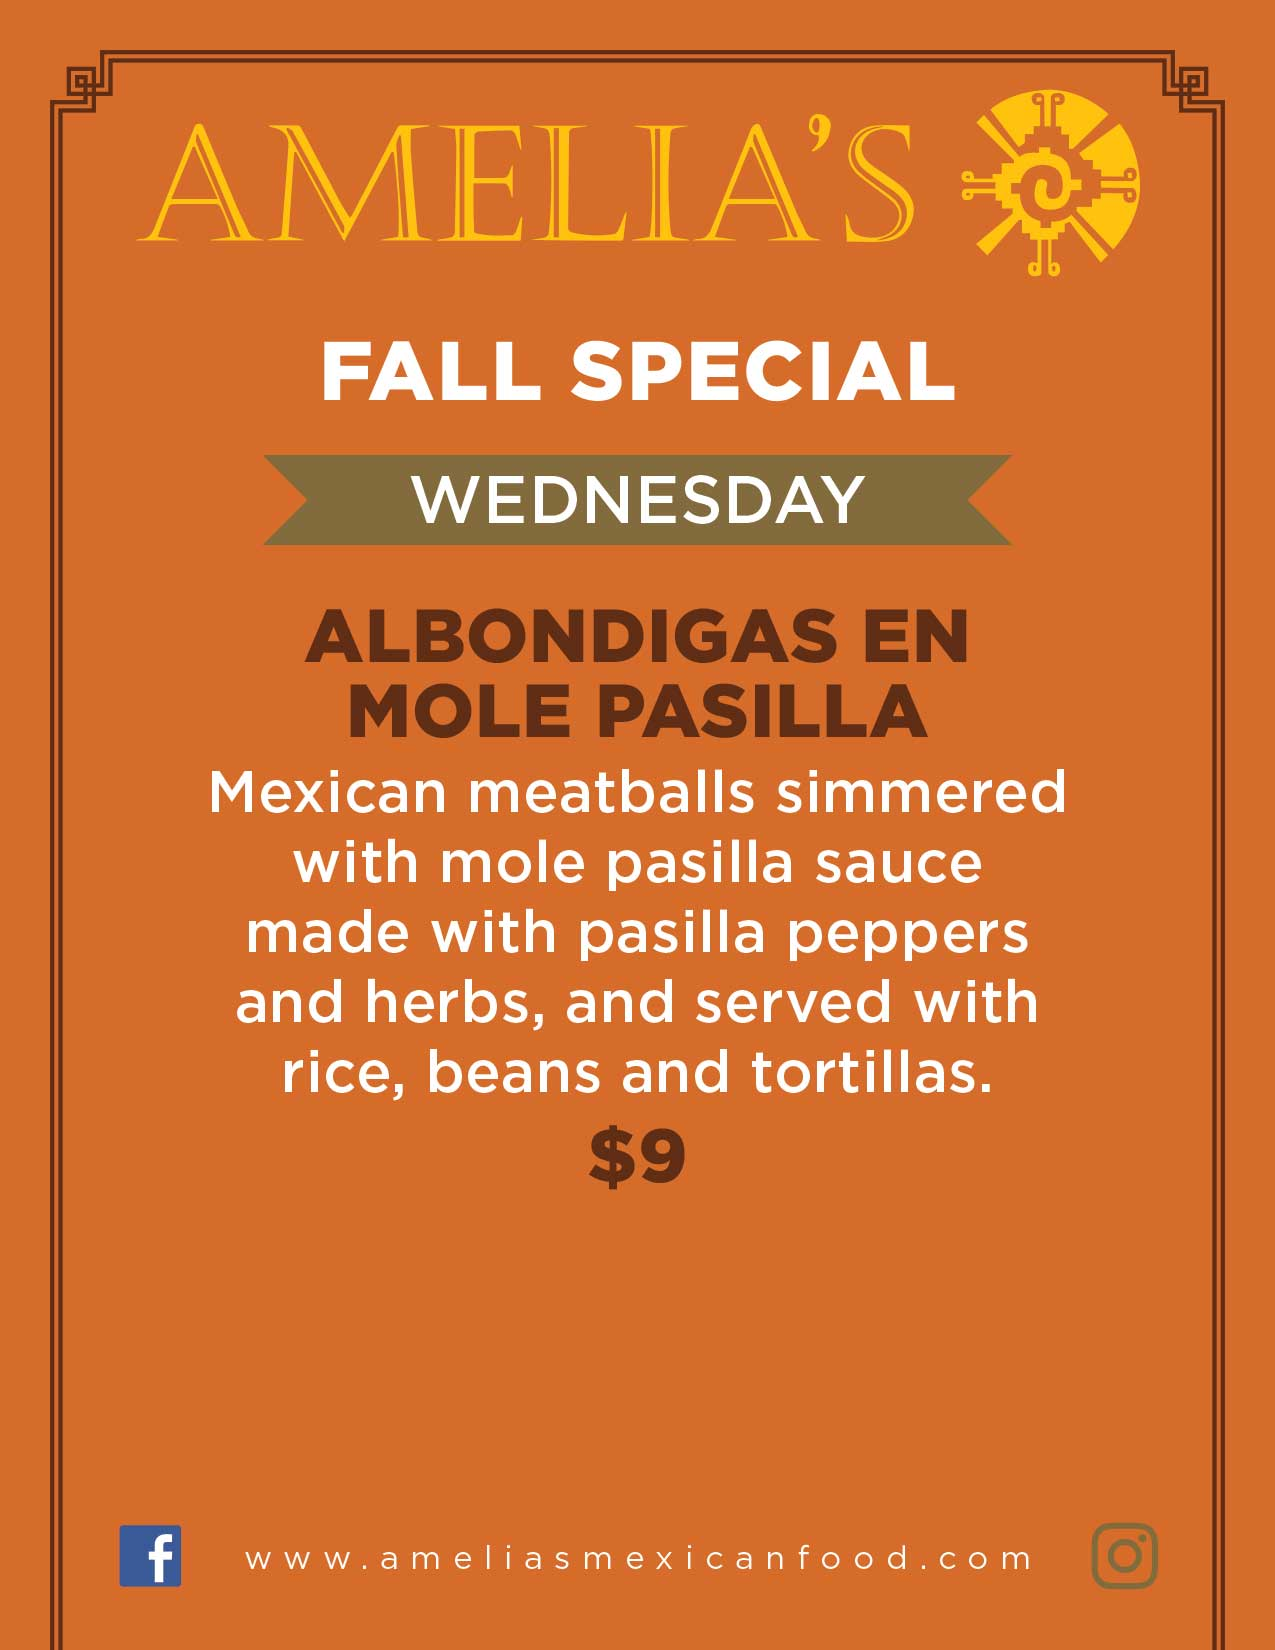 Image of Wednesday specials